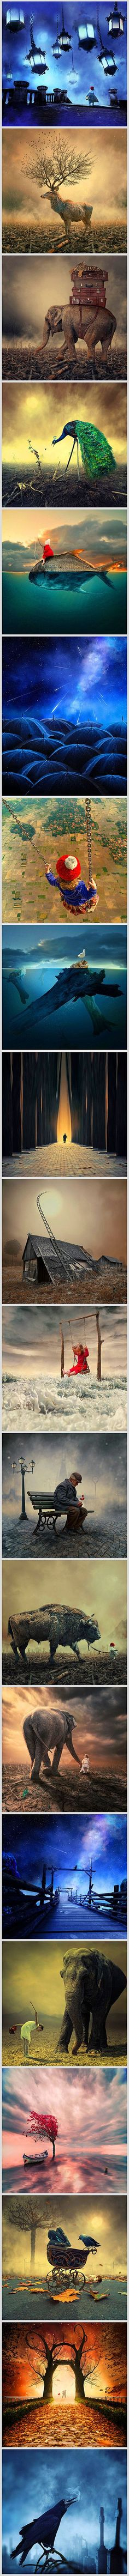 Some photography purists resent photo manipulation, but others enjoy how it has opened up photography to new people and new ideas. Caras Ionut is a Romanian photographer and digital artist who makes a great case for digital art and photography. He has created an extensive body of images that are beautiful, enchanting – and impossible.